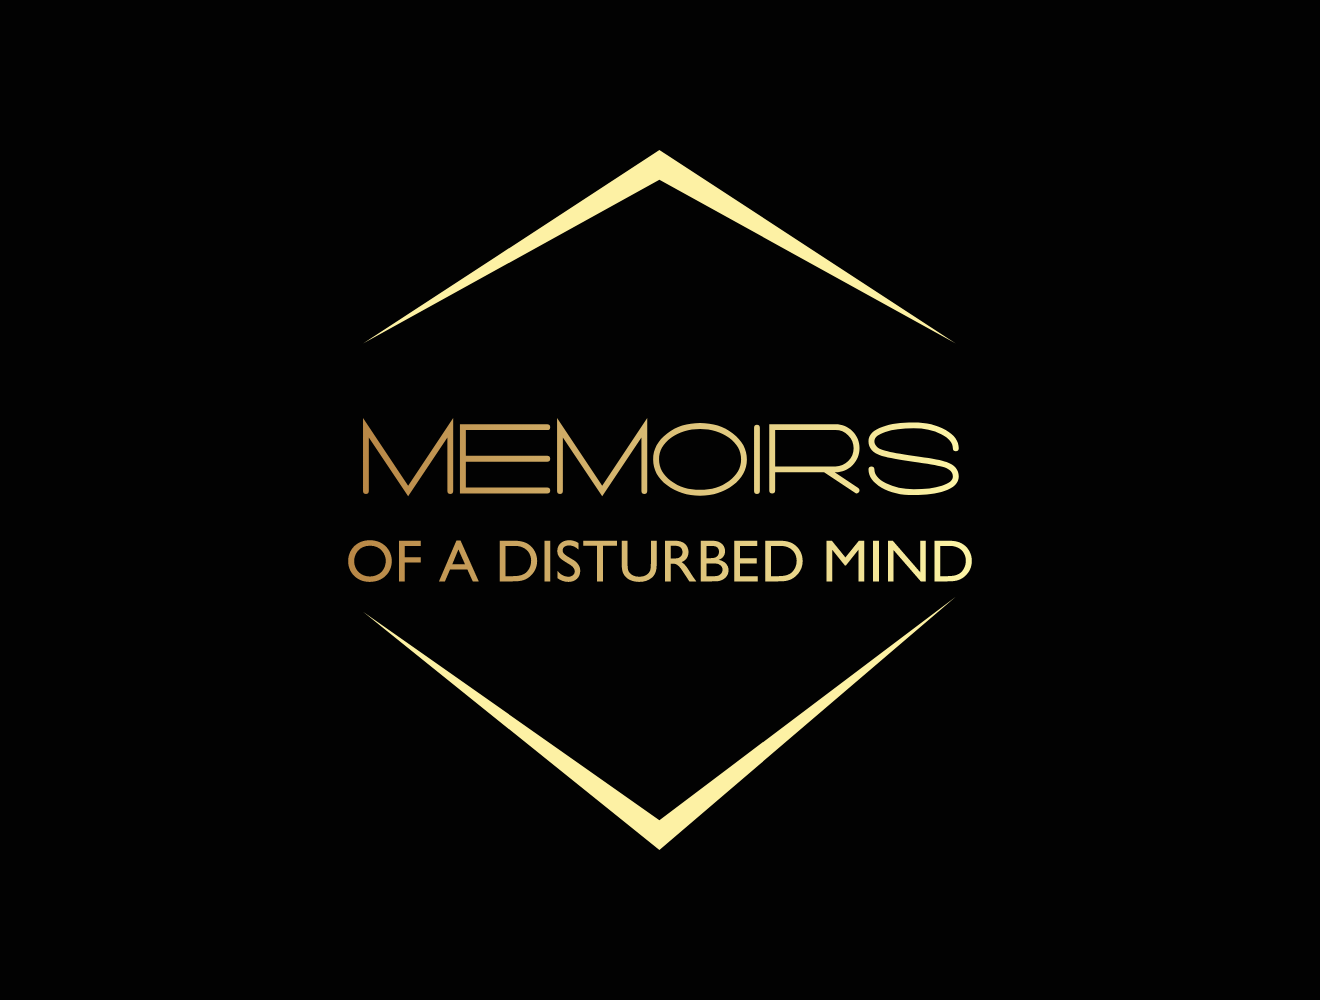 Memoirs of a Disturbed Mind